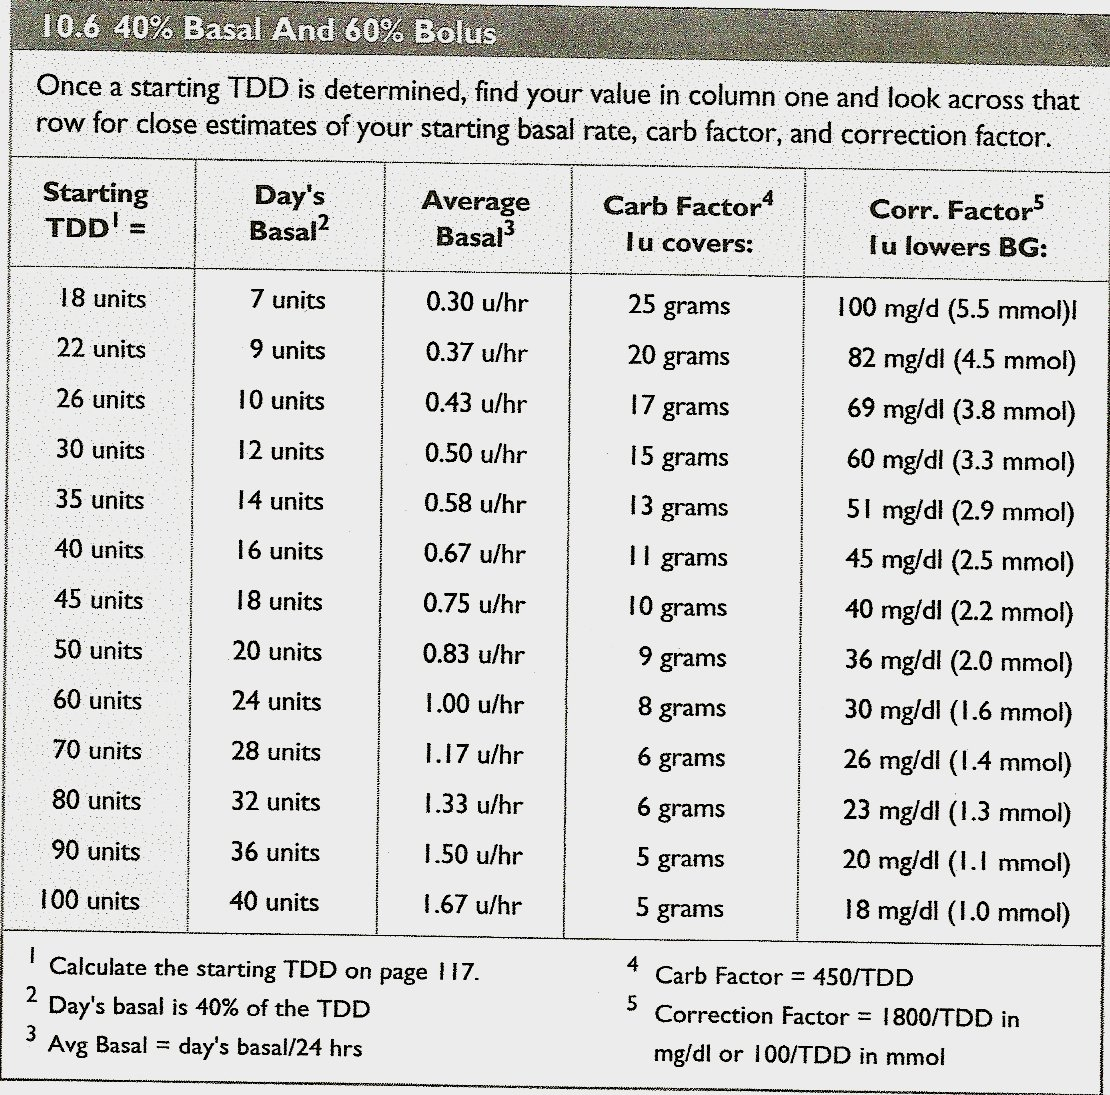 28 Day Expiration Chart Insulin – Samyysandra 28 Day Drug Expiration Calendar